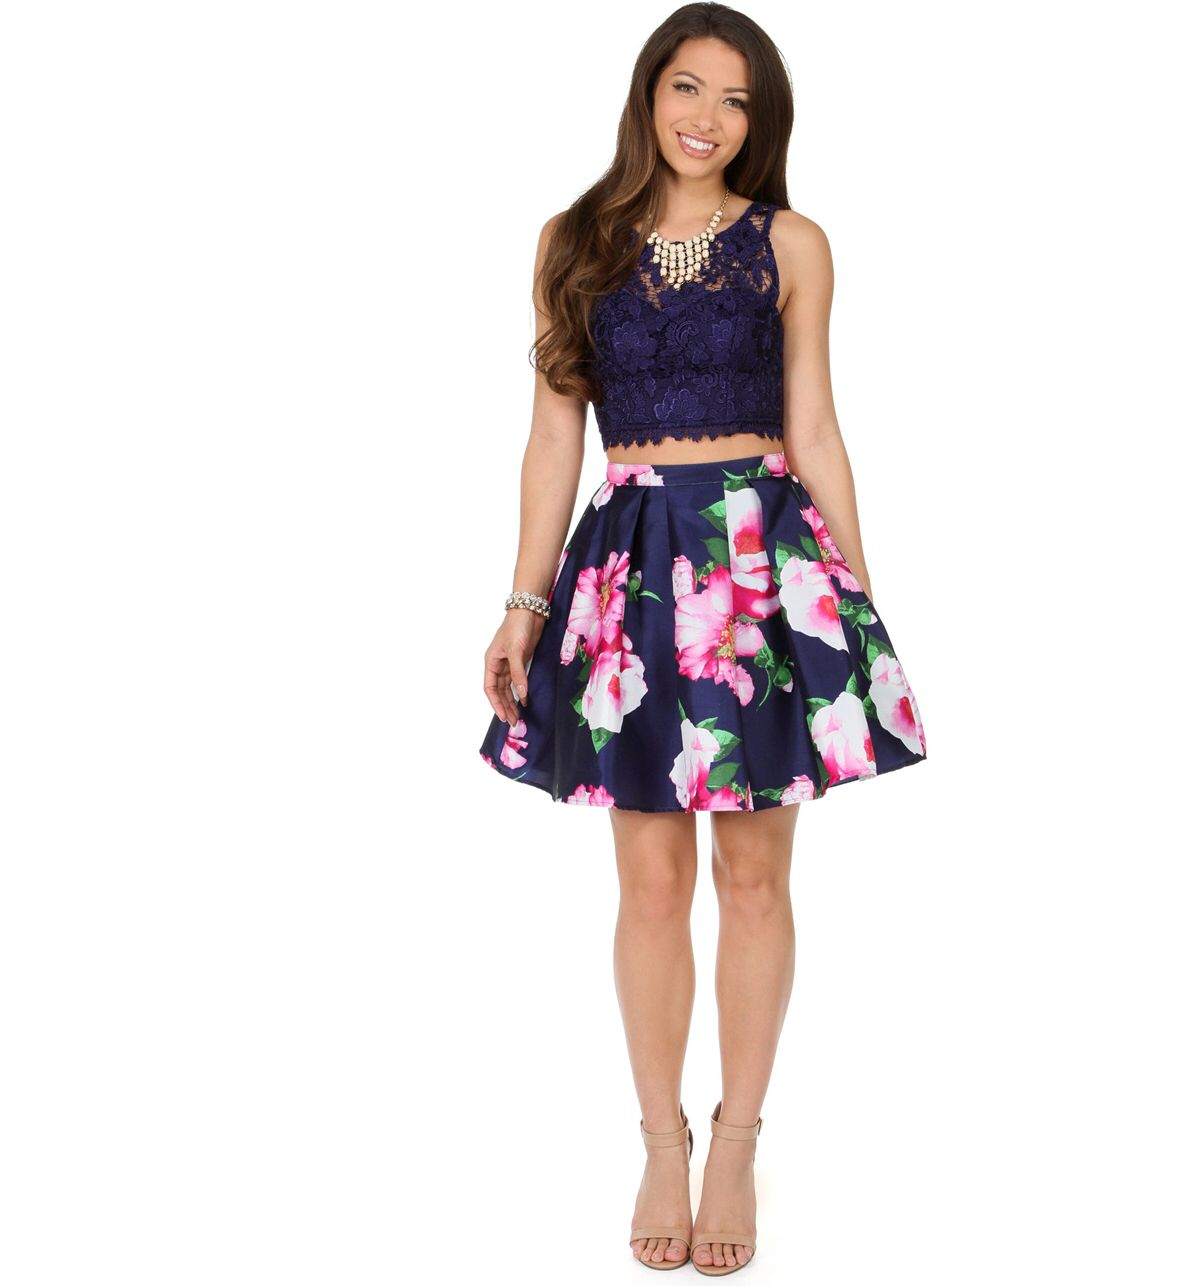 Navy Blue Floral Homecoming Dress From Windsor Lace Crop Tops Fancy Dresses Floral Homecoming Dresses [ 1286 x 1180 Pixel ]